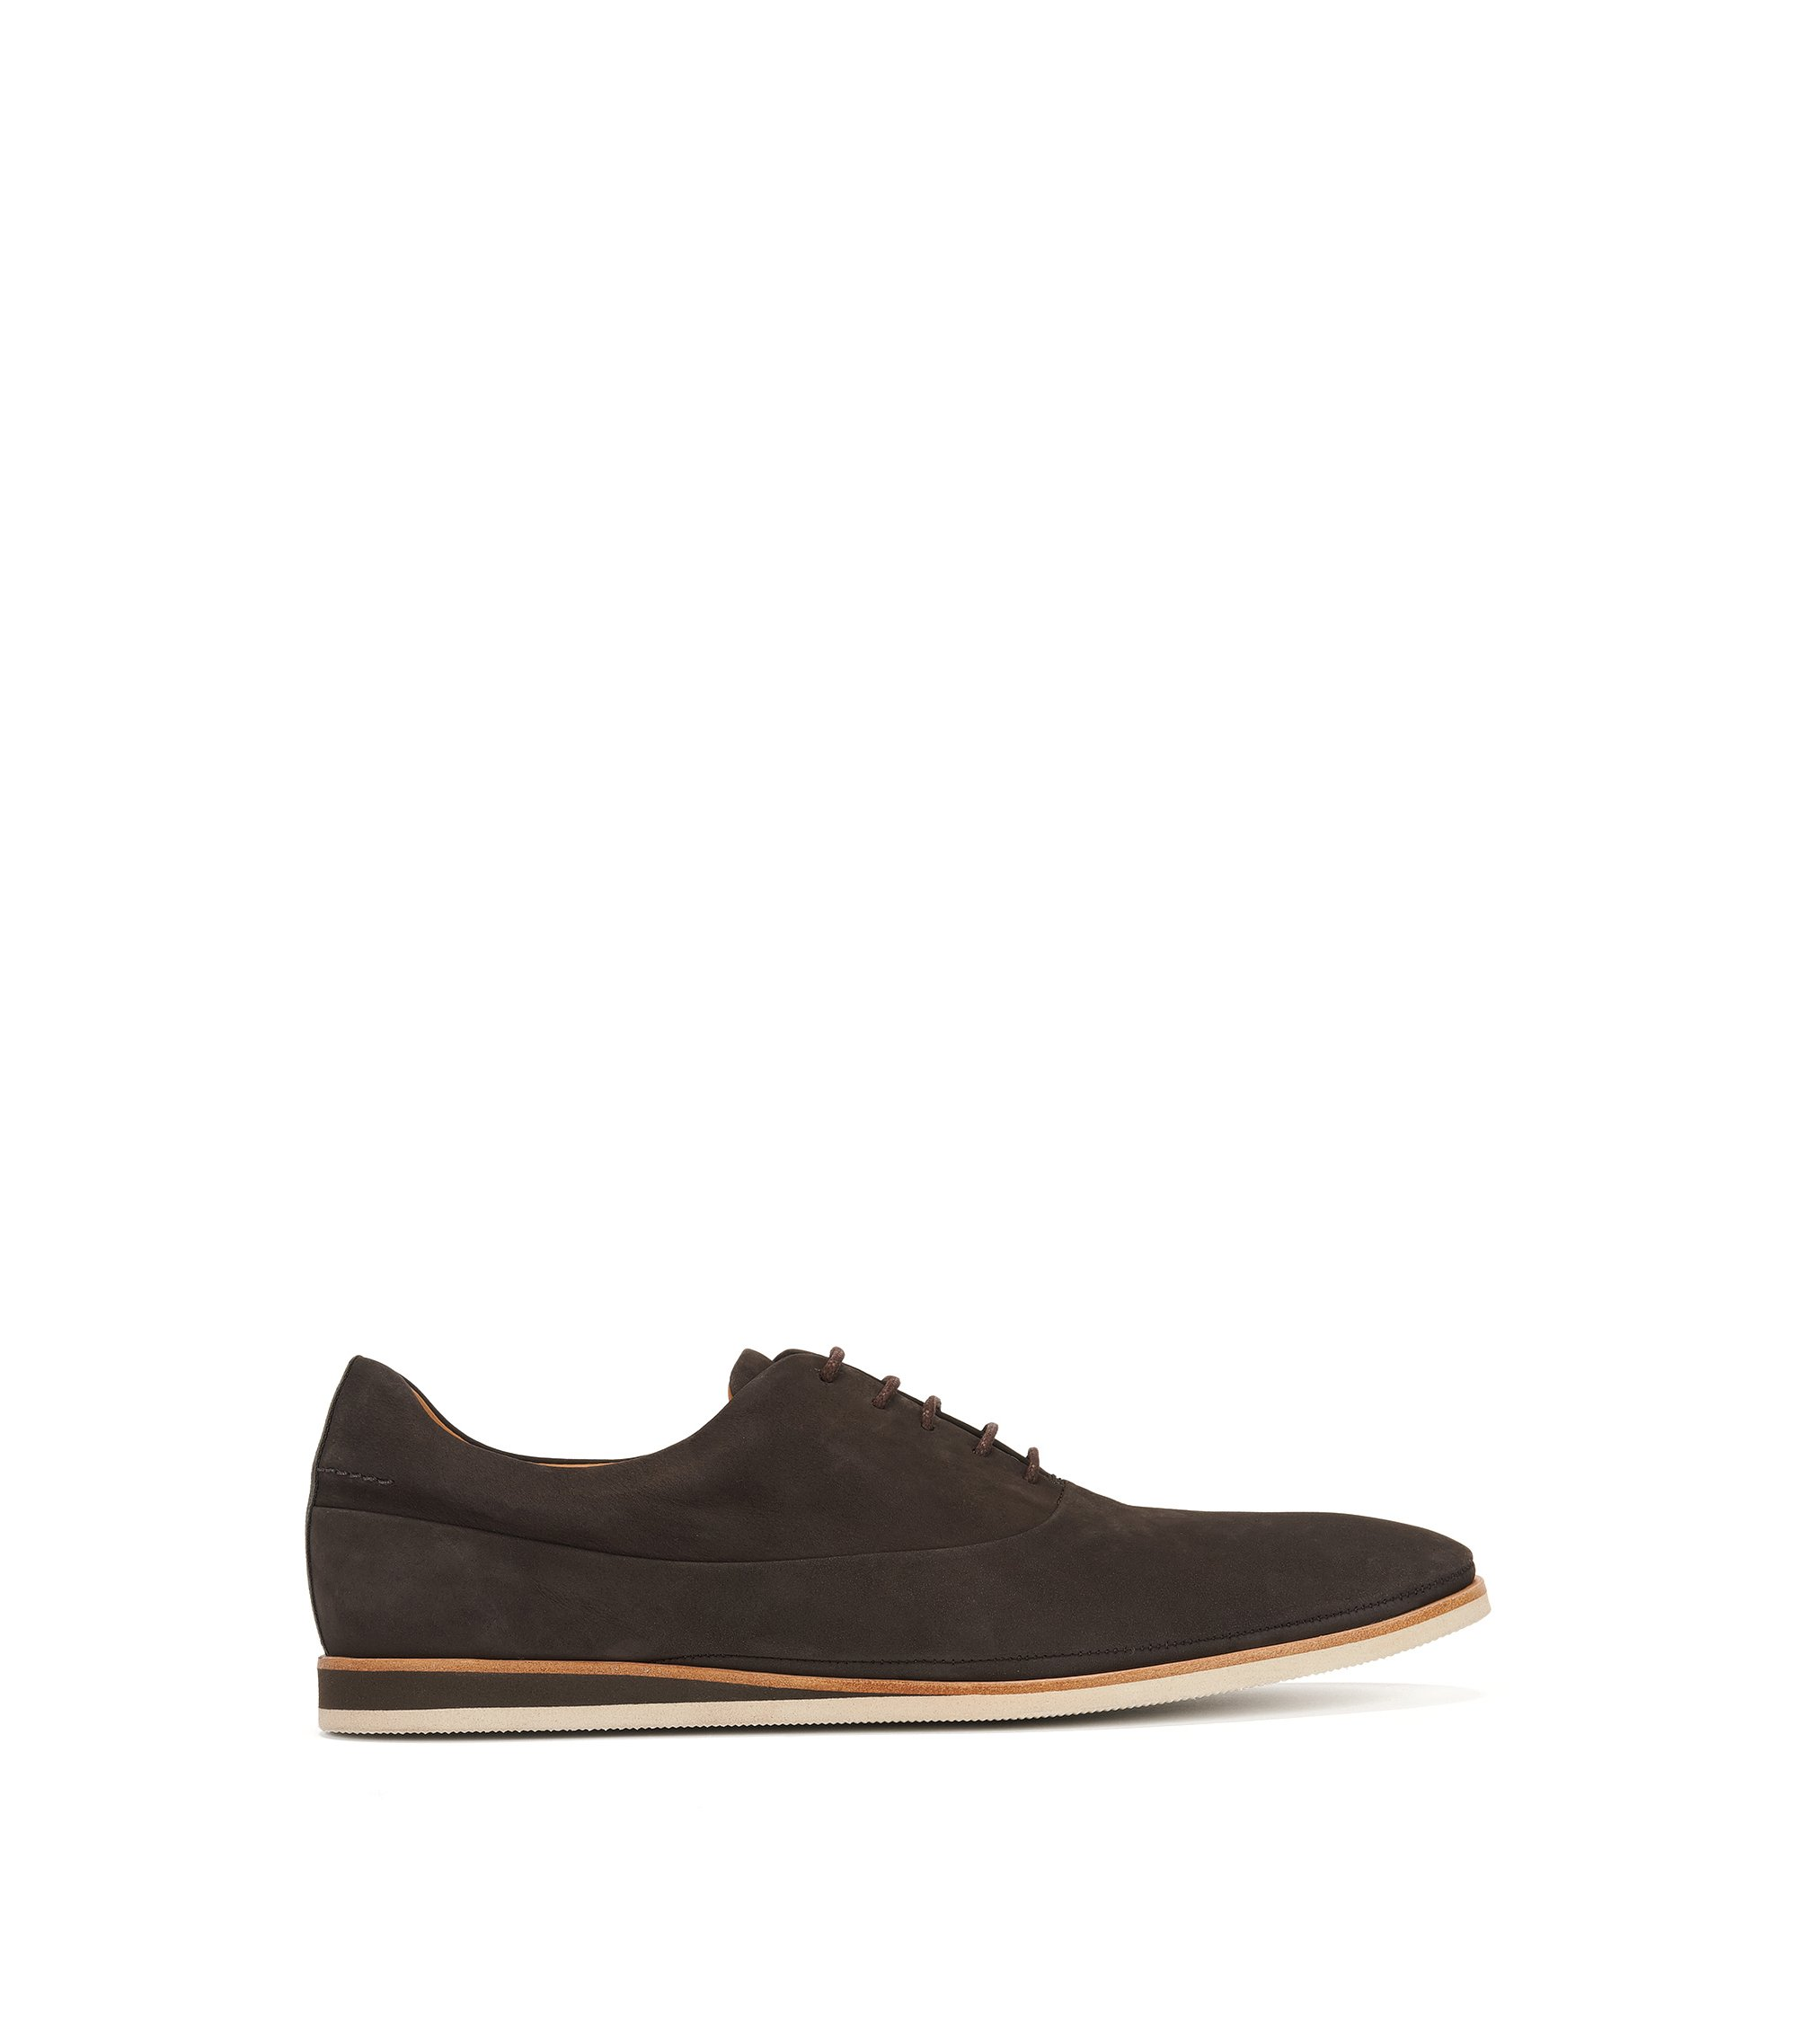 Scarpe oxford casual in morbido nabuk, Marrone scuro